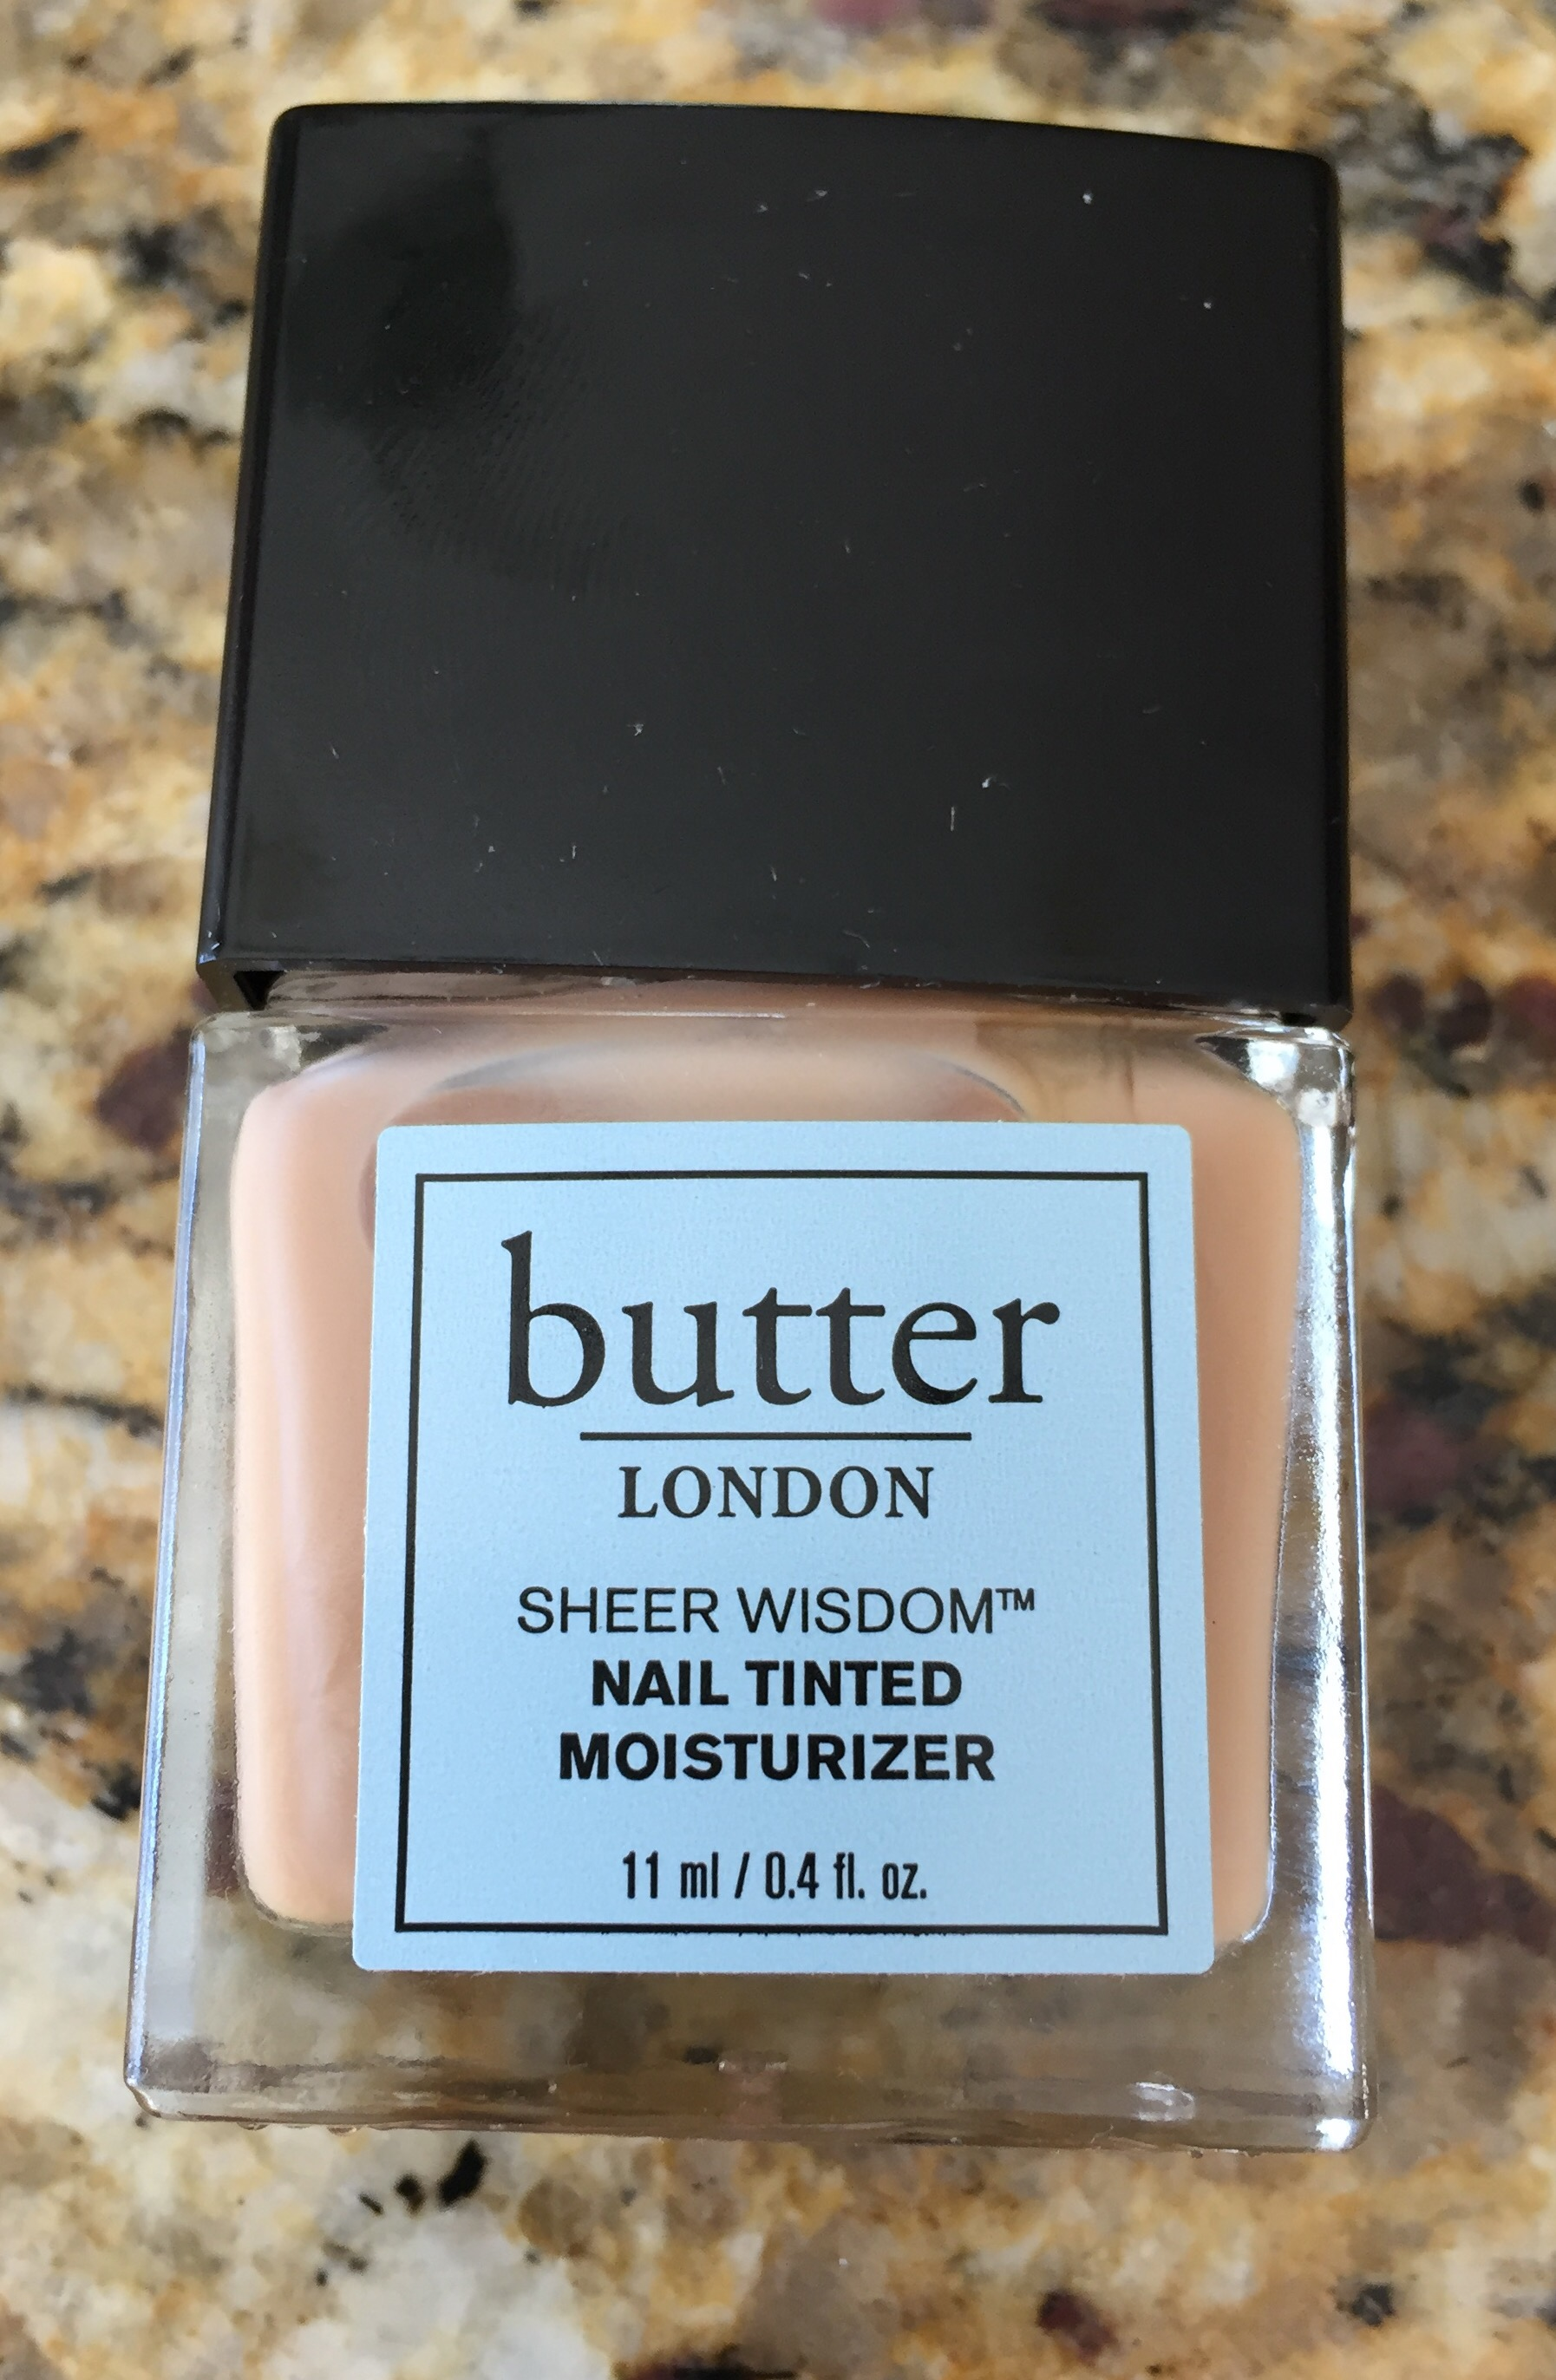 Product Review: butter LONDON Sheer Wisdom Nail Tinted Moisturizer